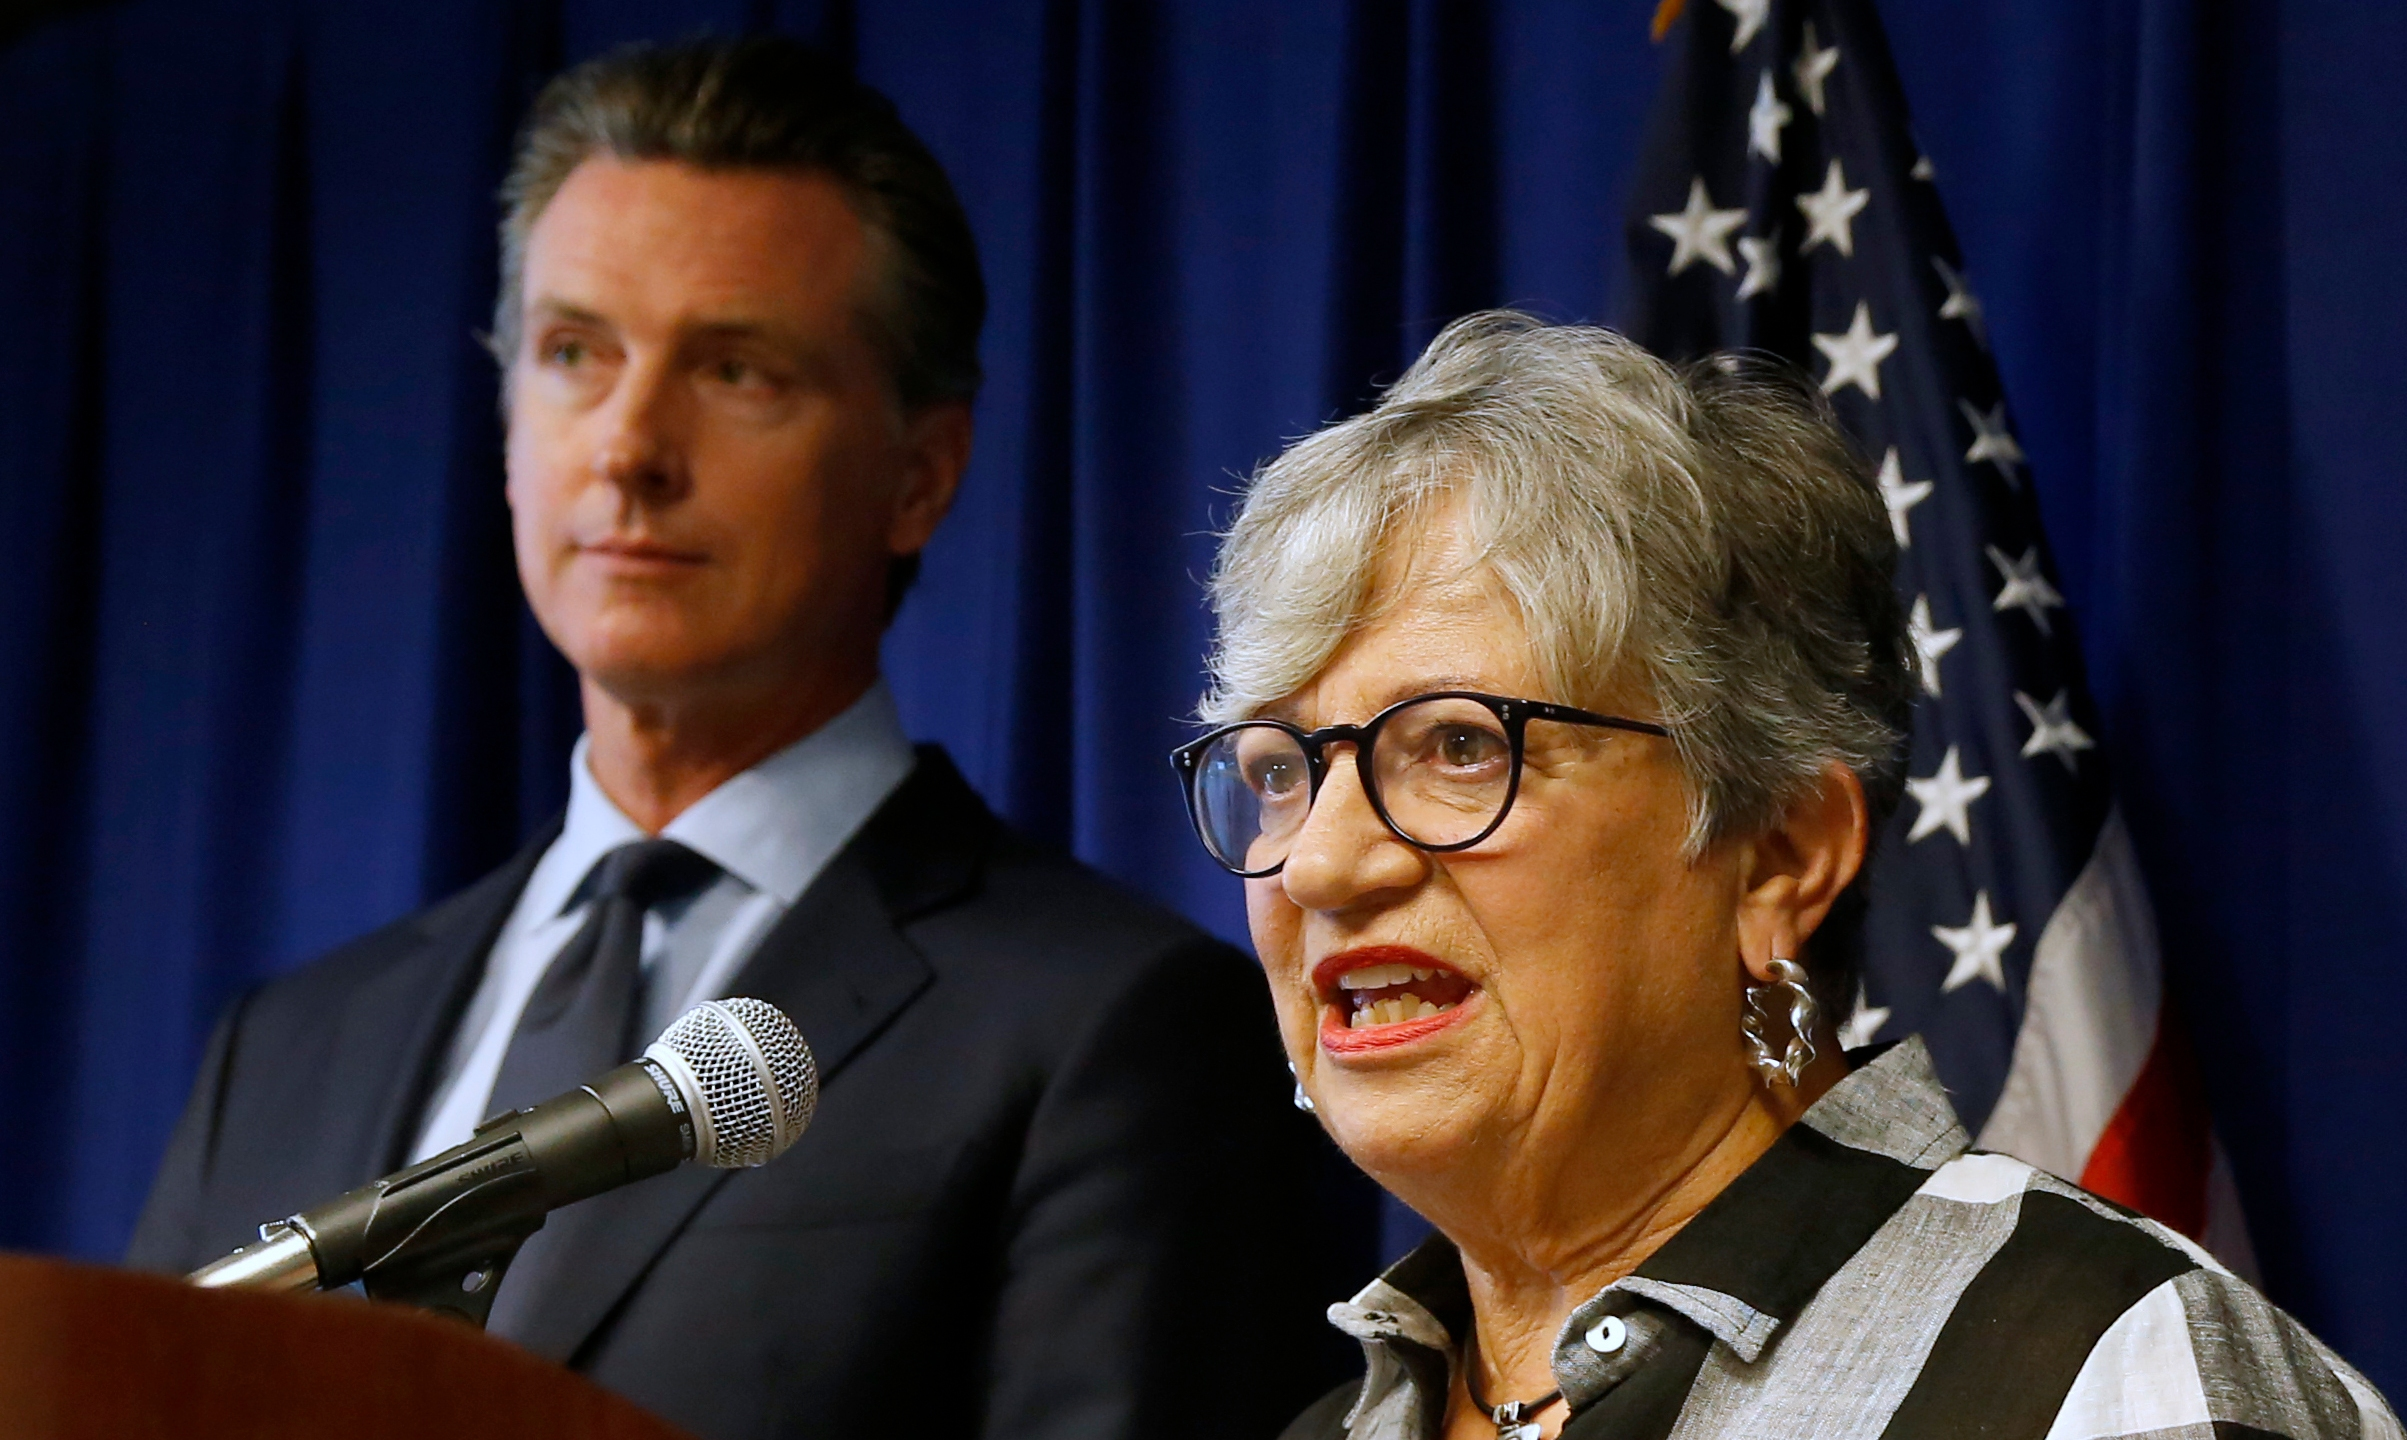 In this Sept. 18, 2019, file photo, California Air Resources Board Chair Mary Nichols, with California Gov. Gavin Newsom at left, discusses the Trump administration's pledge to revoke California's authority to set vehicle emissions standards that are different than the federal standards, during a news conference in Sacramento. (Rich Pedroncelli / Associated Press)